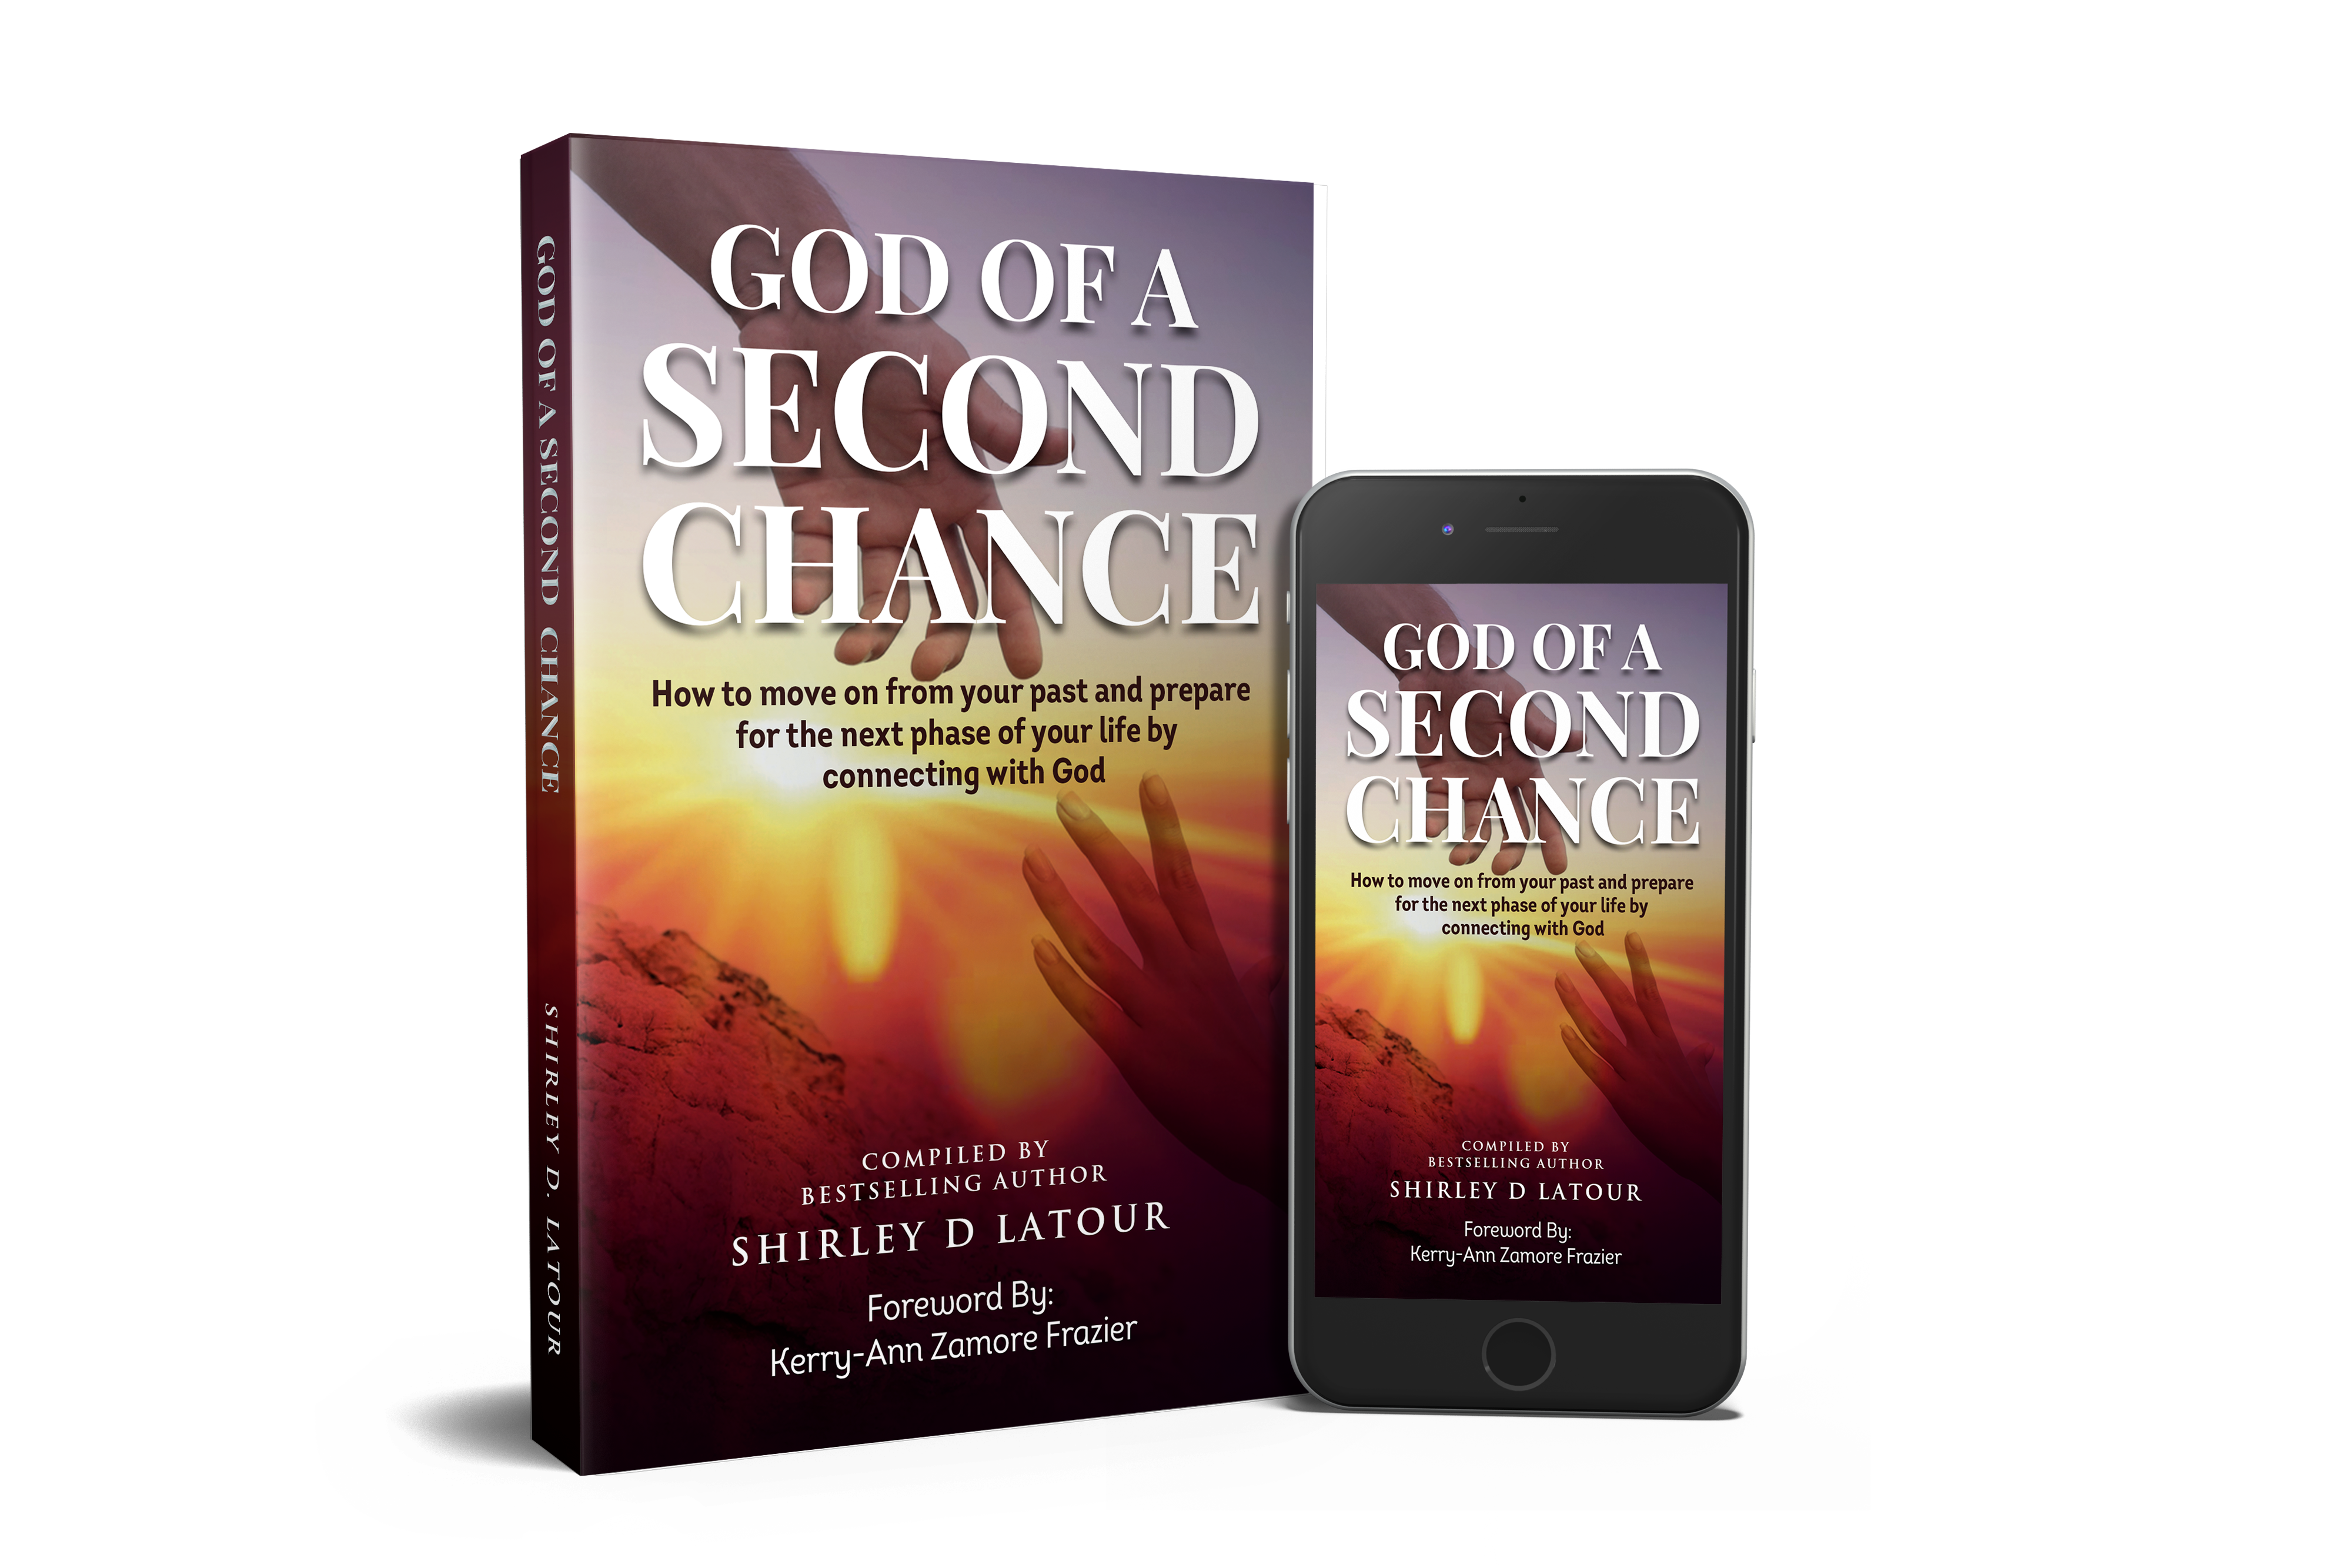 God of a Second Chance Anthology